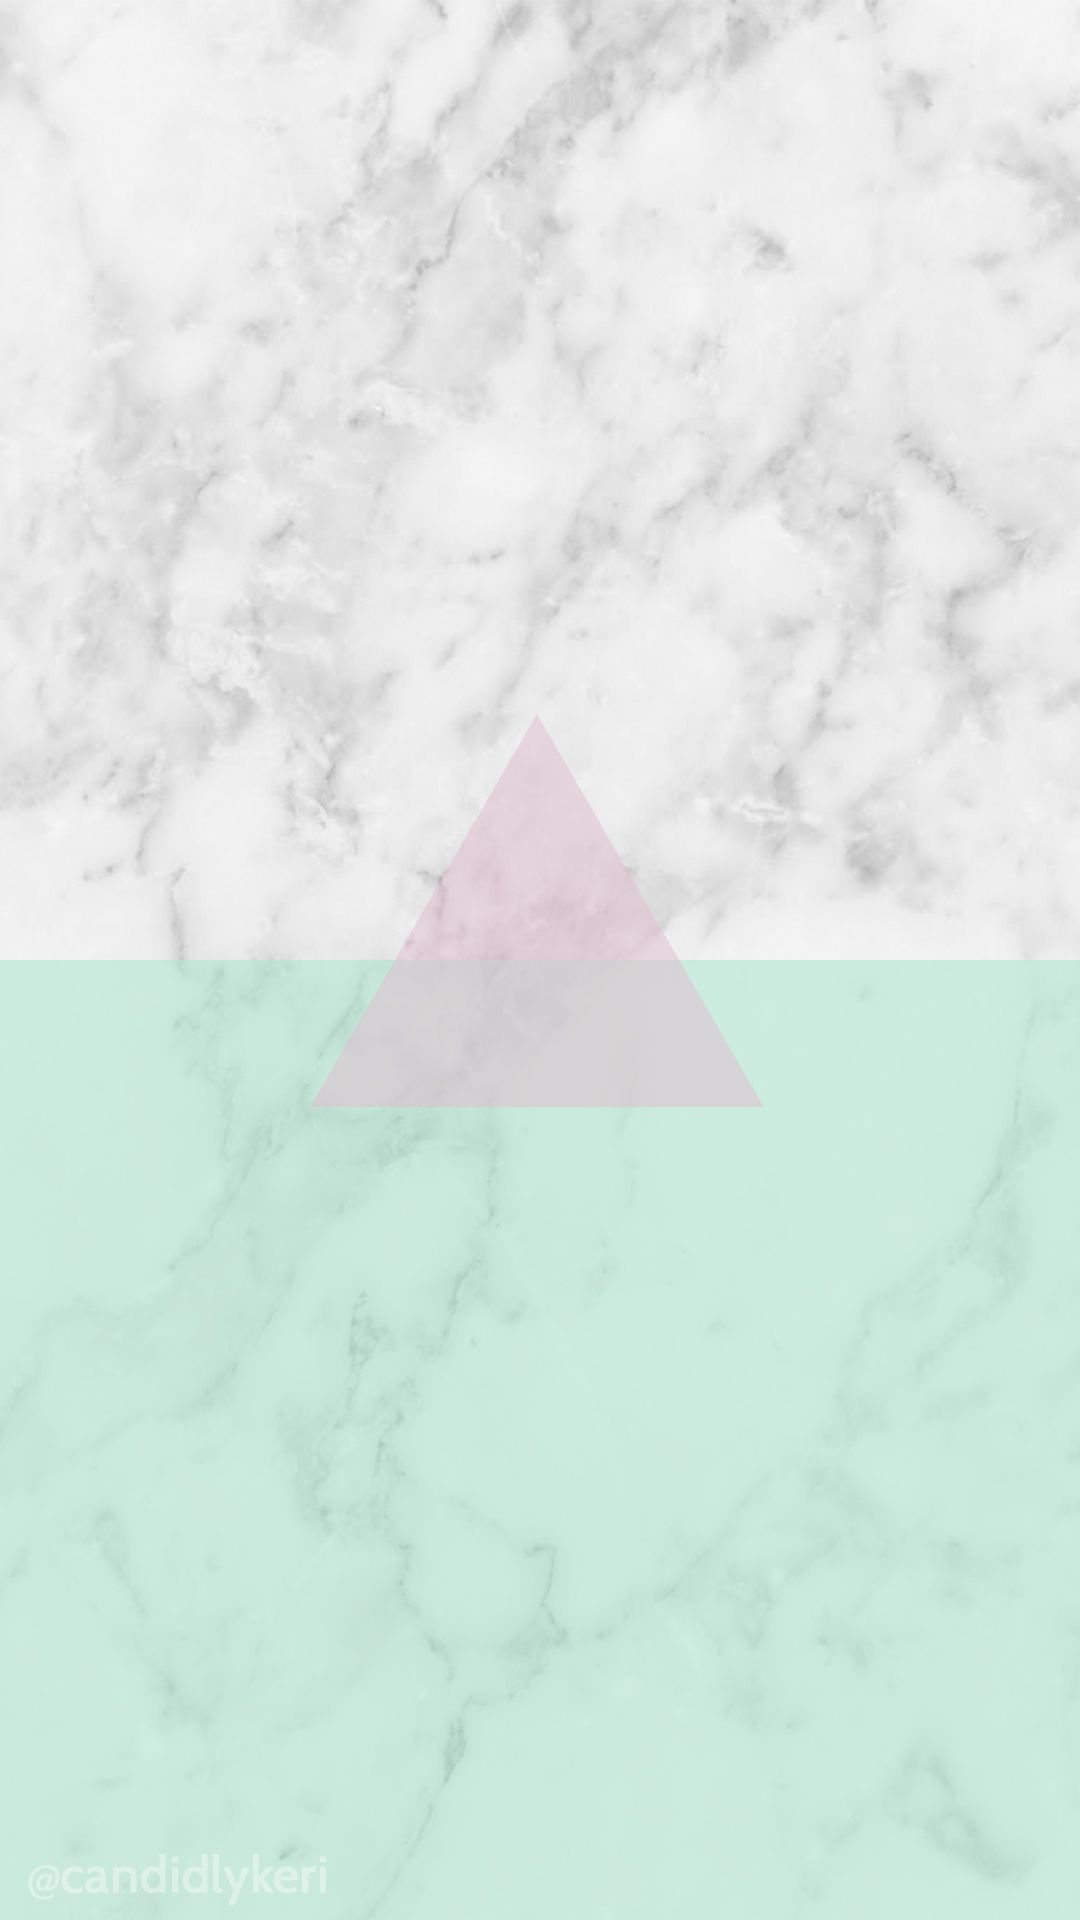 Granite Pink Green Triangle Background Wallpaper You Can Download For Free On The Blog For Any Device Iphone Wallpaper Marble Iphone Wallpaper Phone Wallpaper